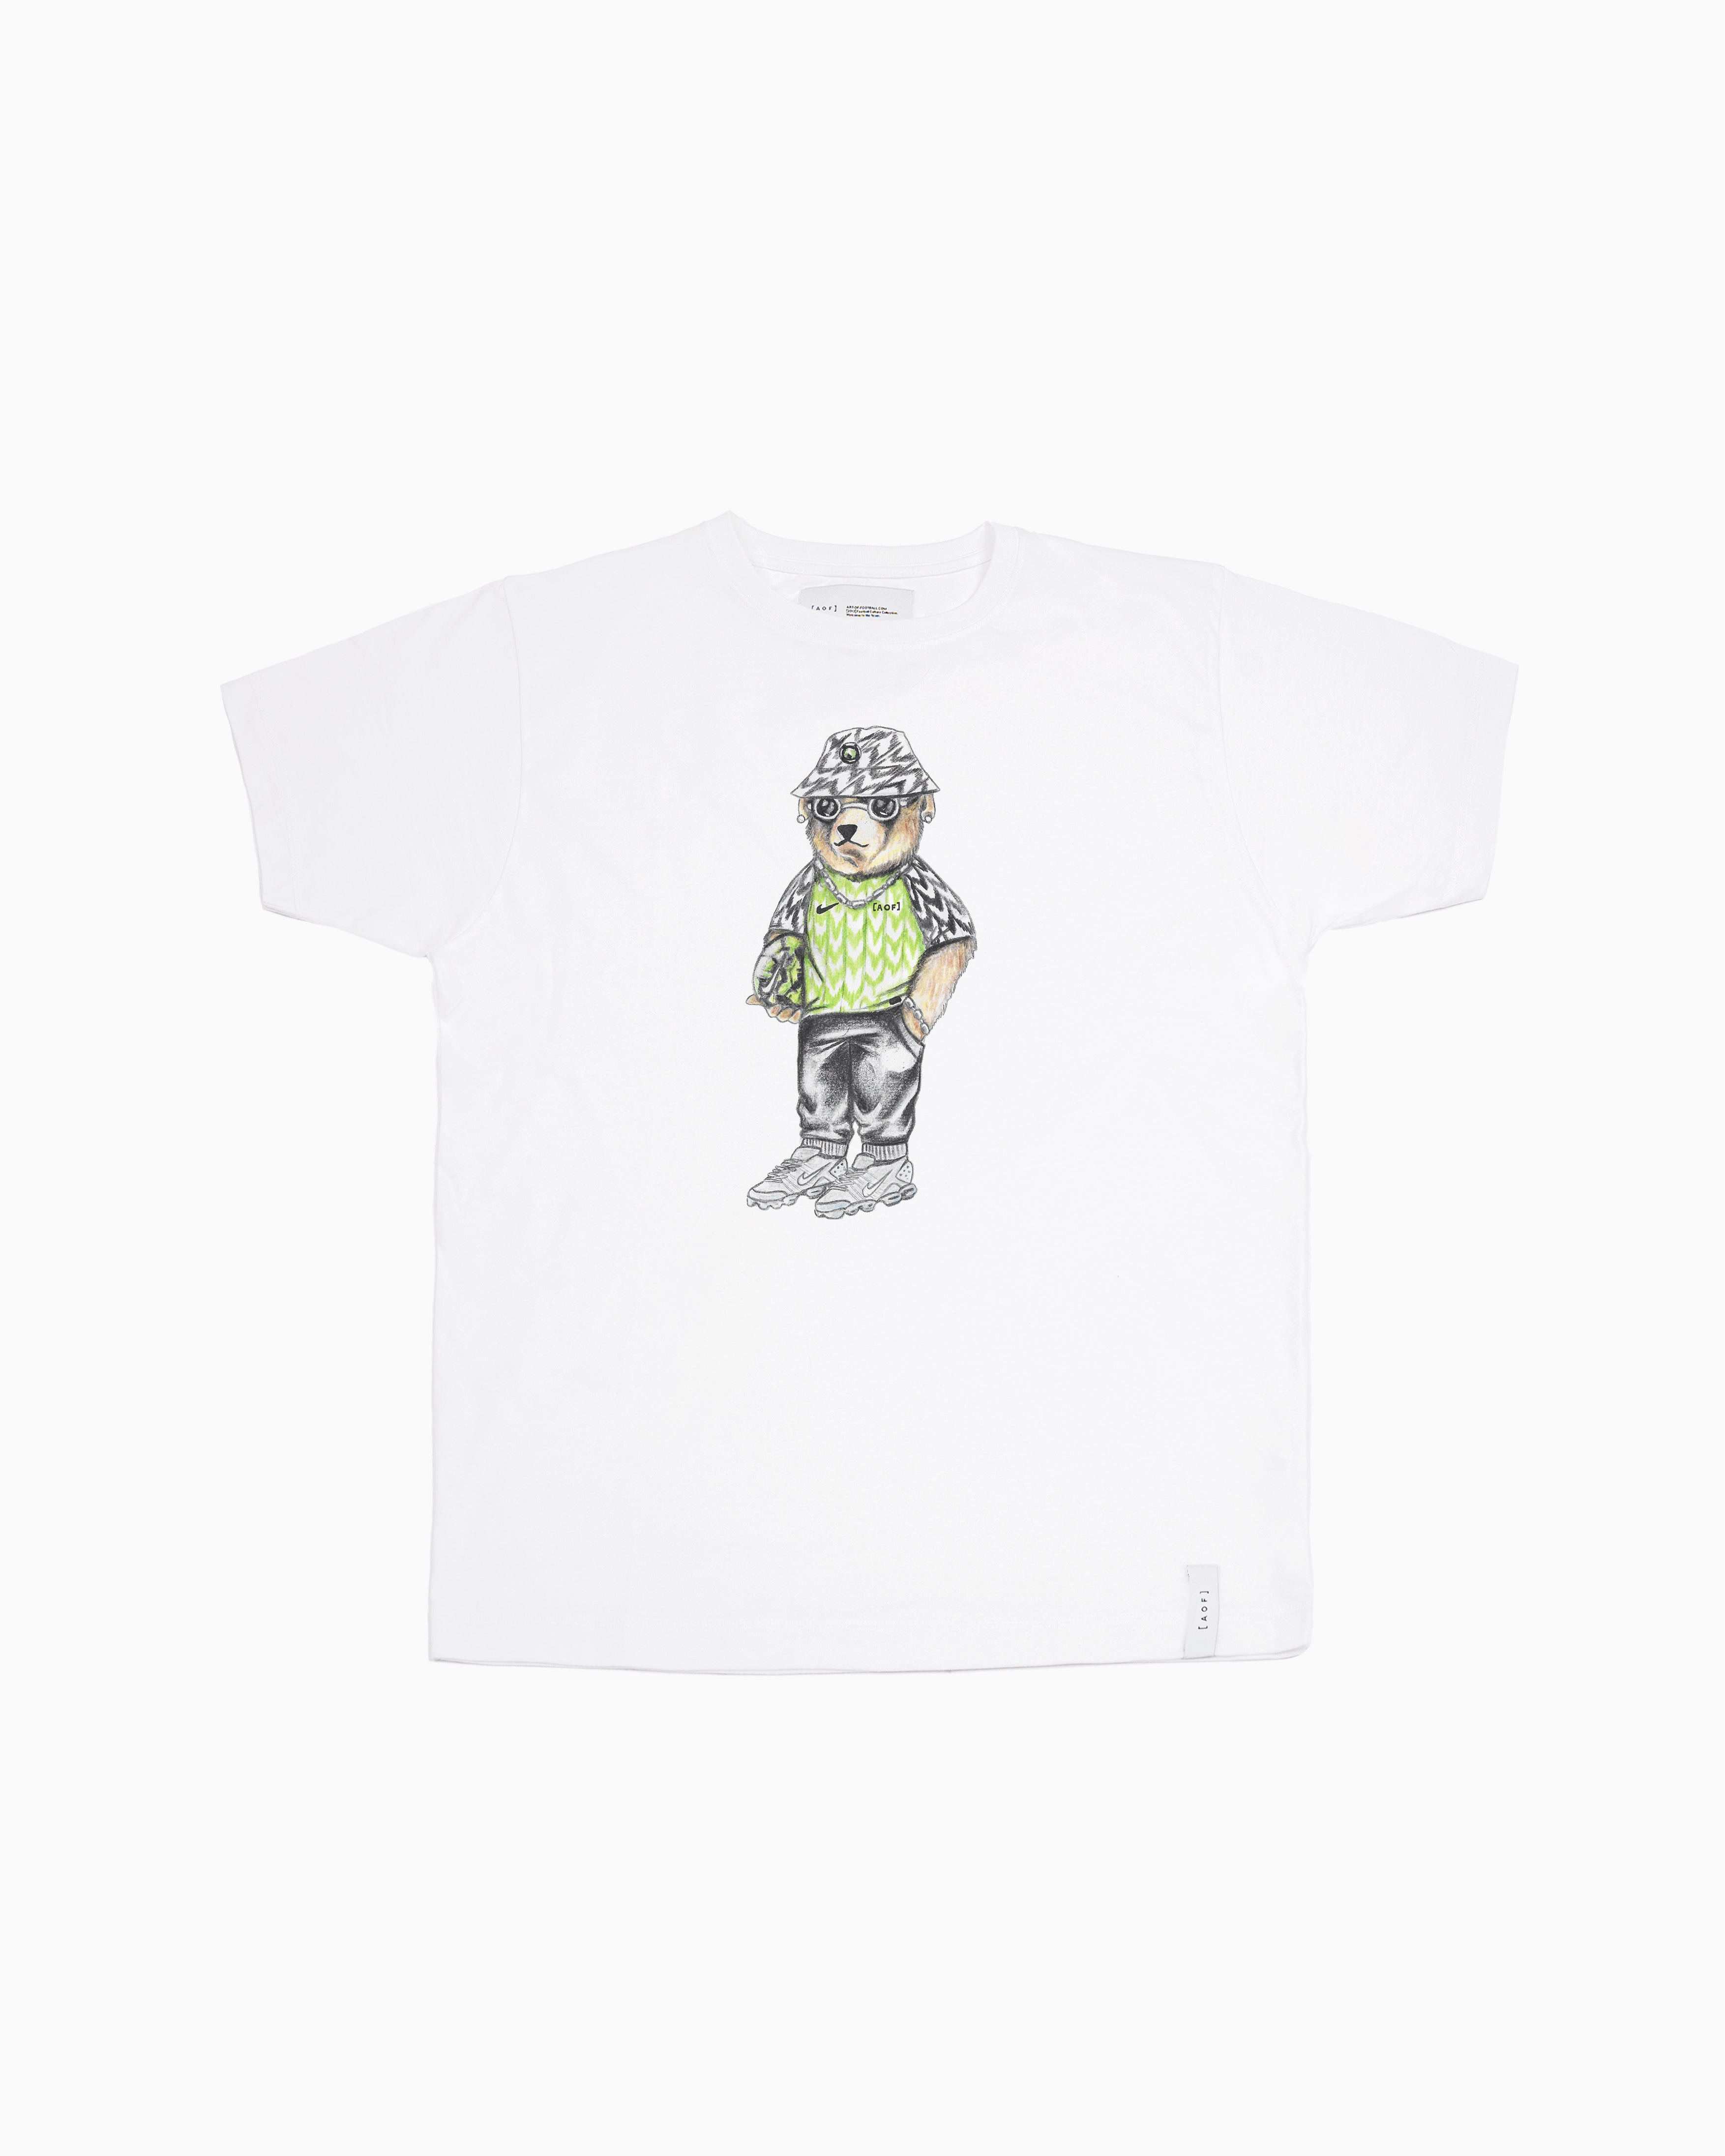 Pickles The Super Eagle - Nigeria Tee or Sweat